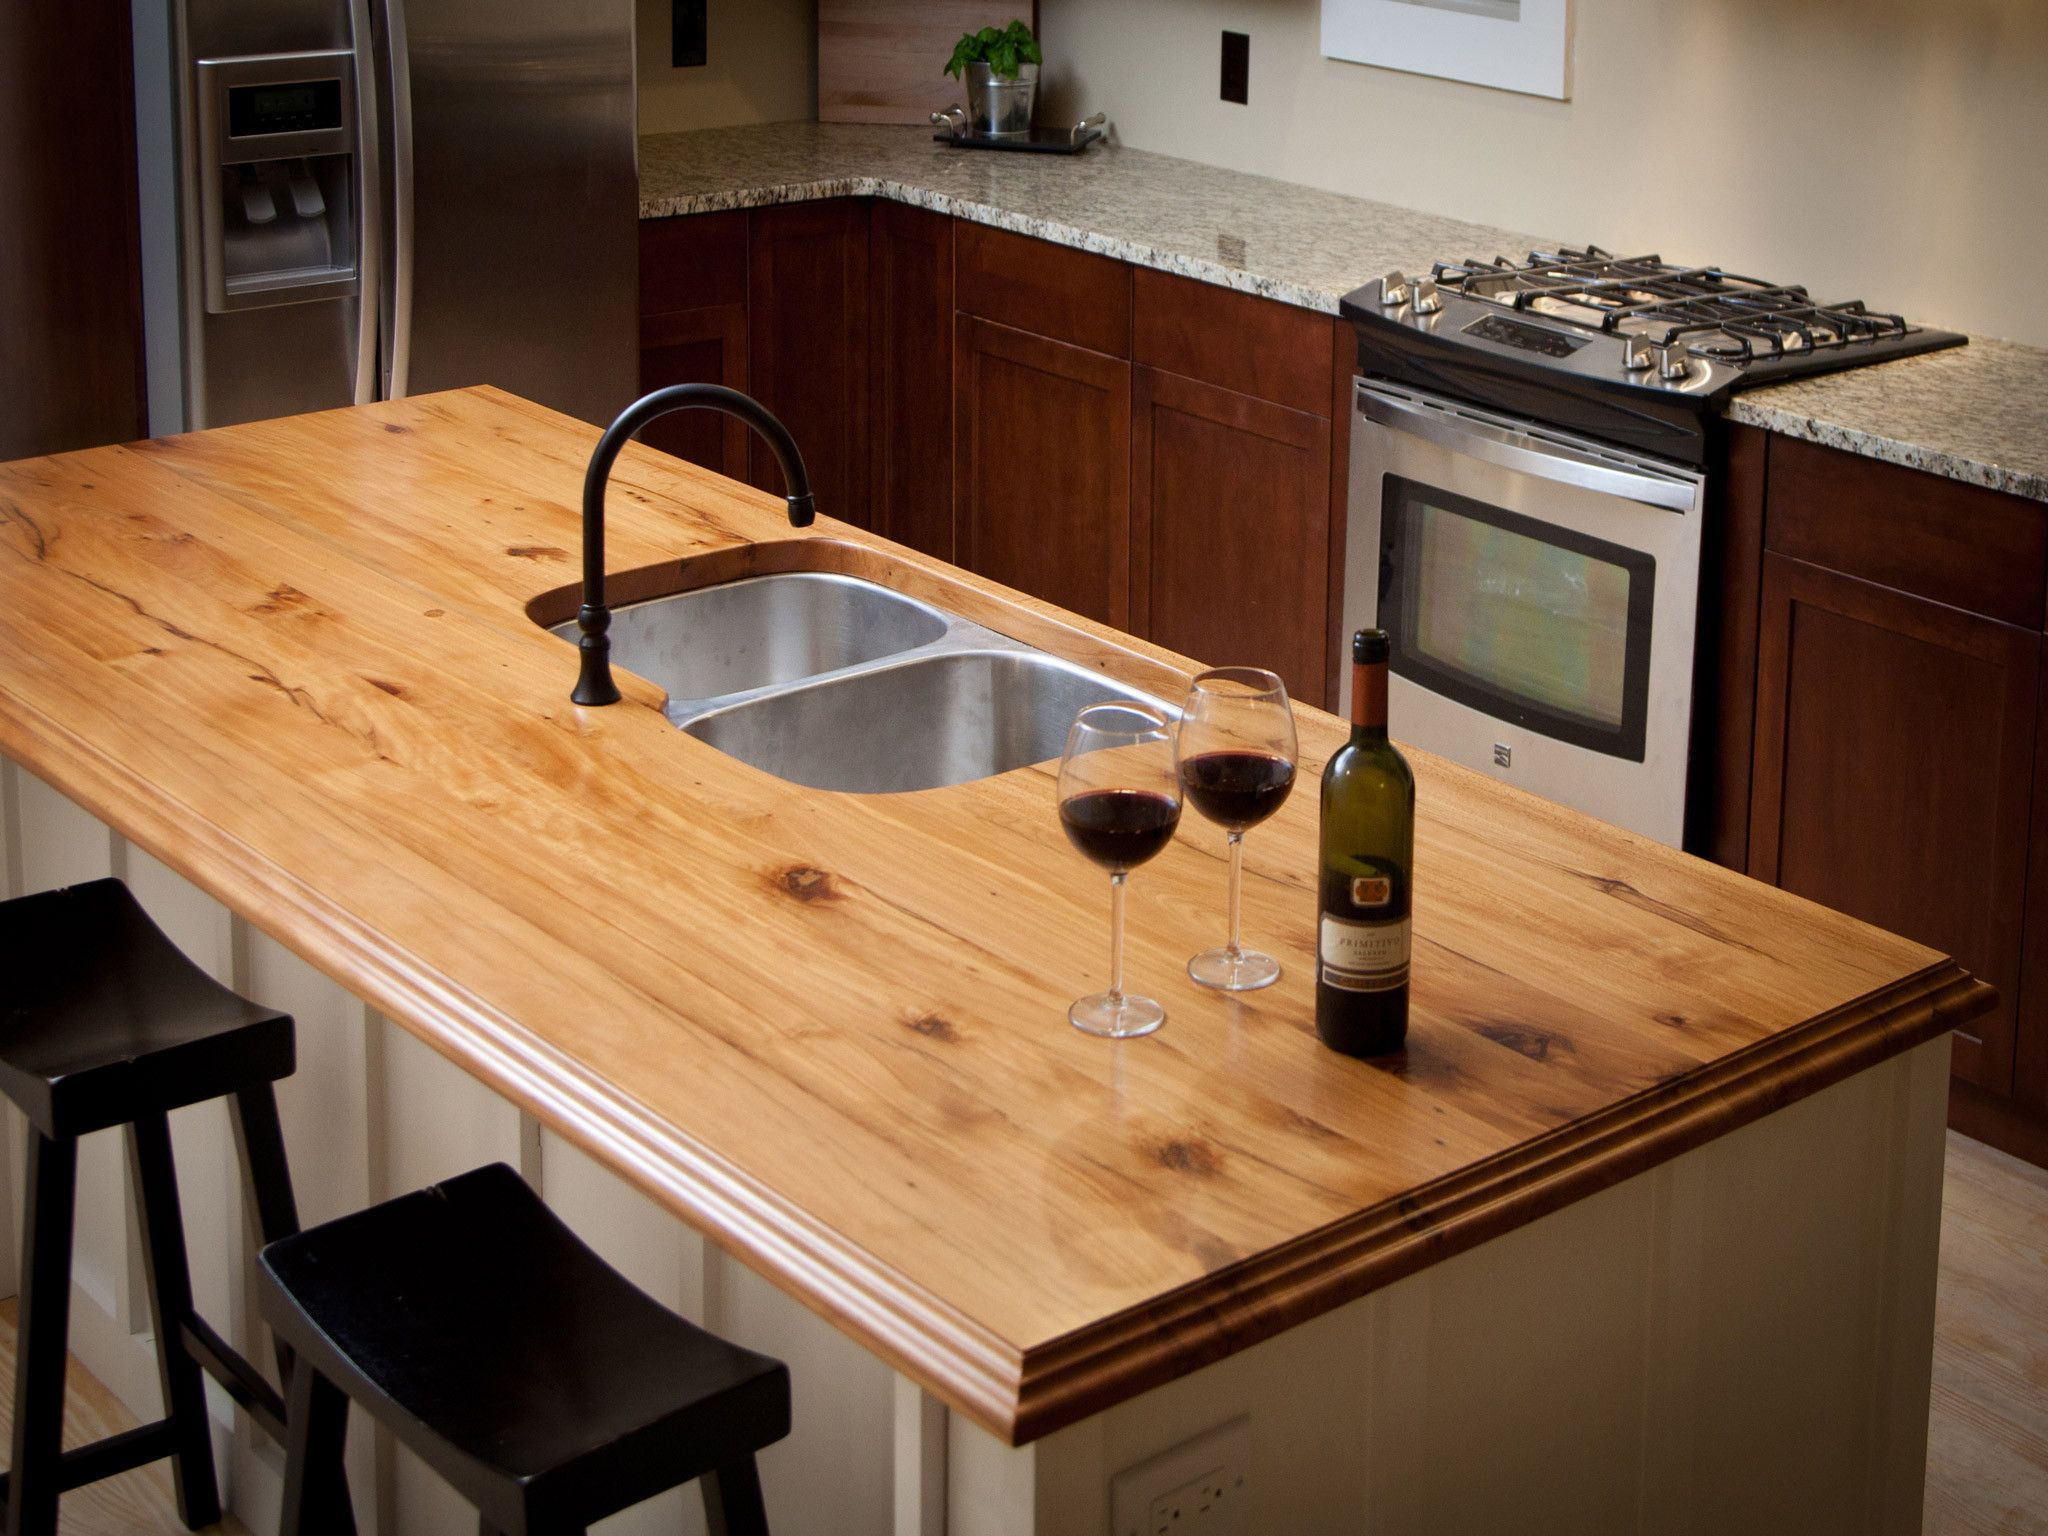 Countertops Worktop Polish Laminate Faux Wood Average Cost Of